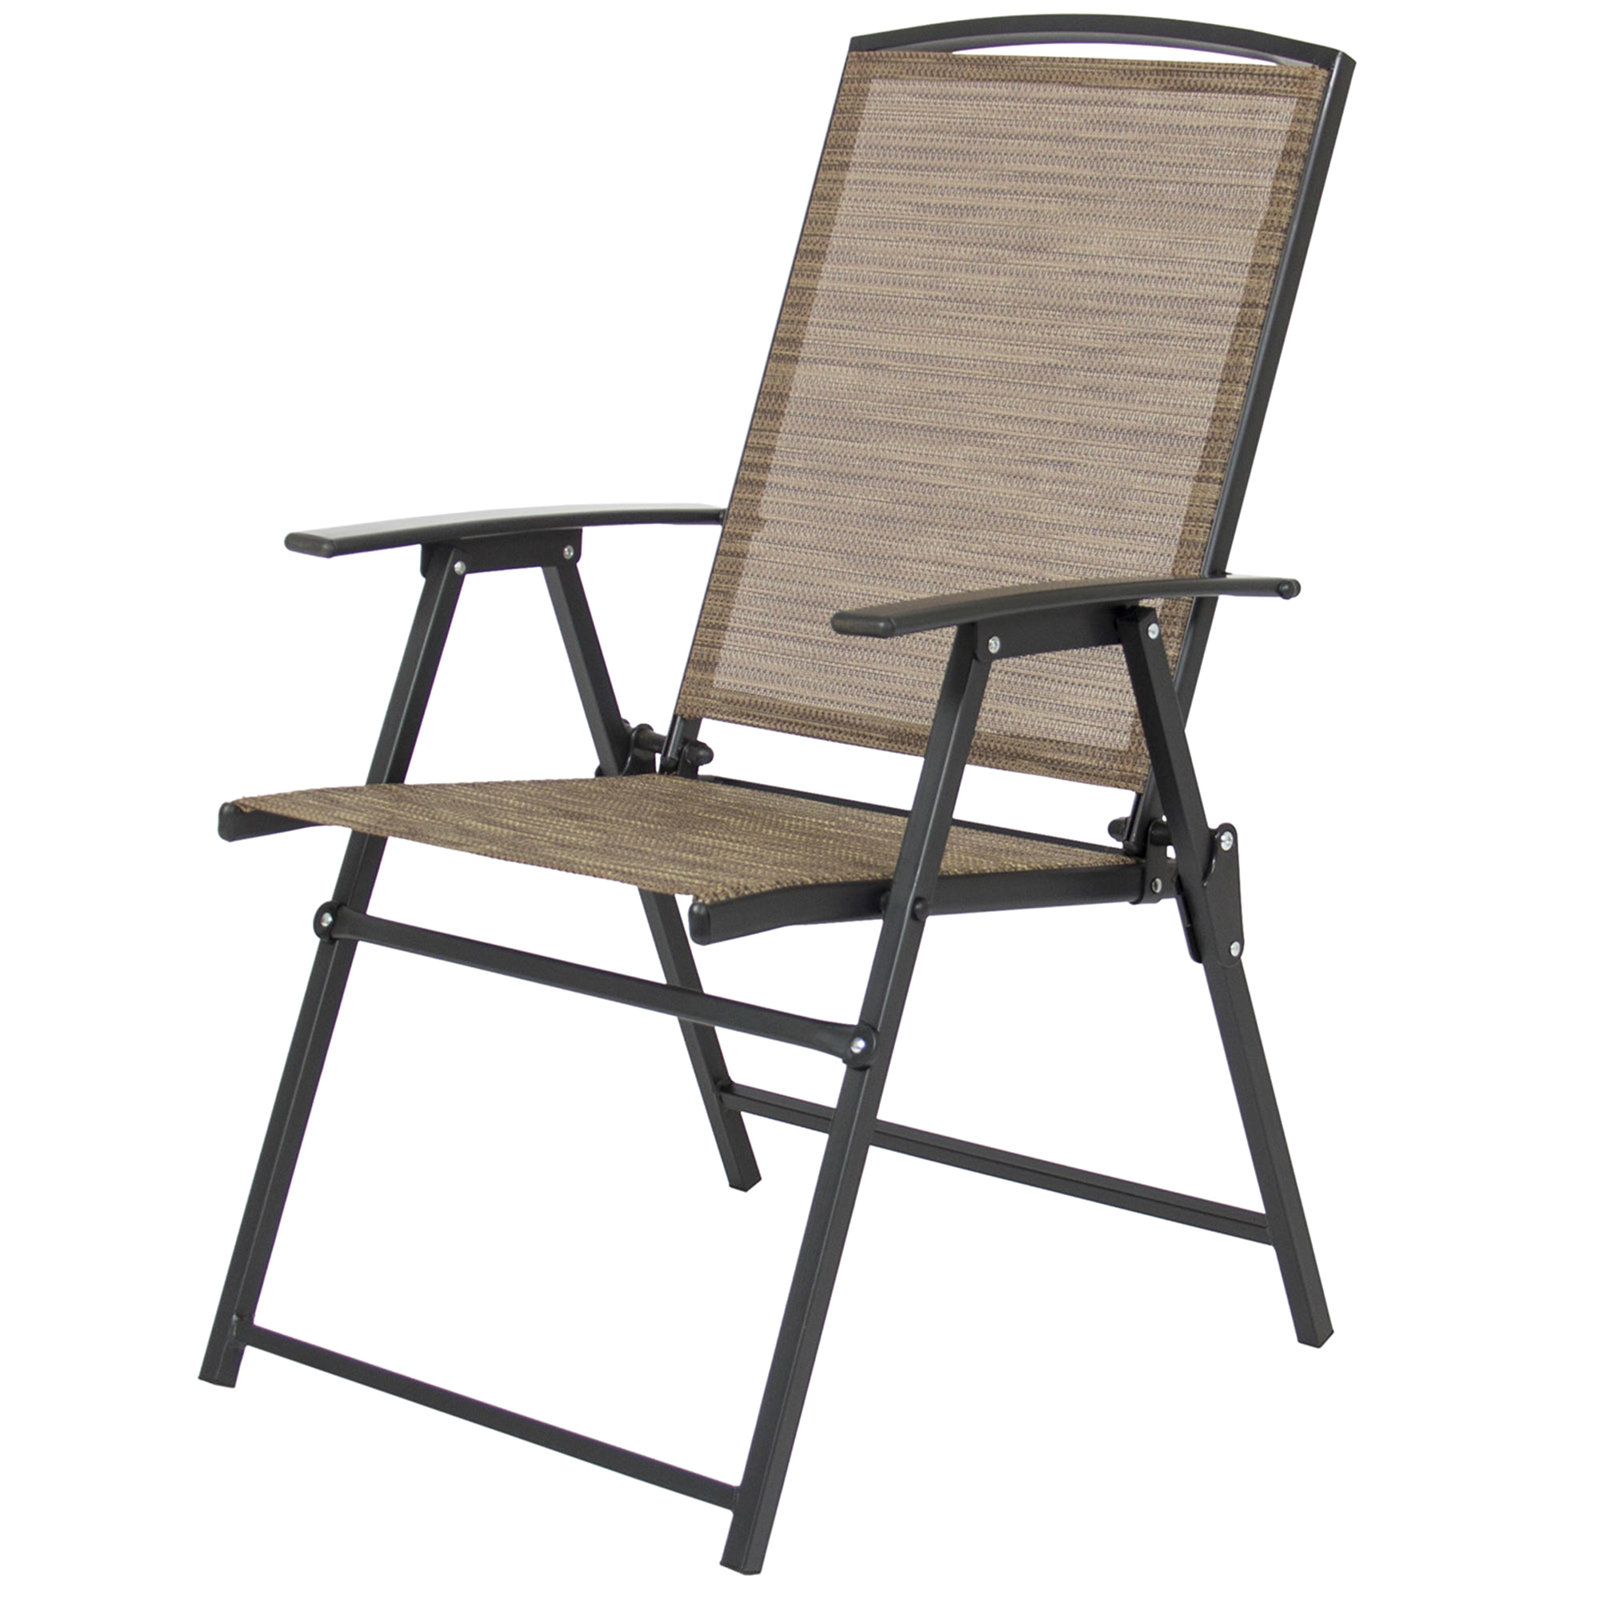 Folding Chairs With Umbrella Best Choice Products 6pc Patio Dining Set Sears Marketplace